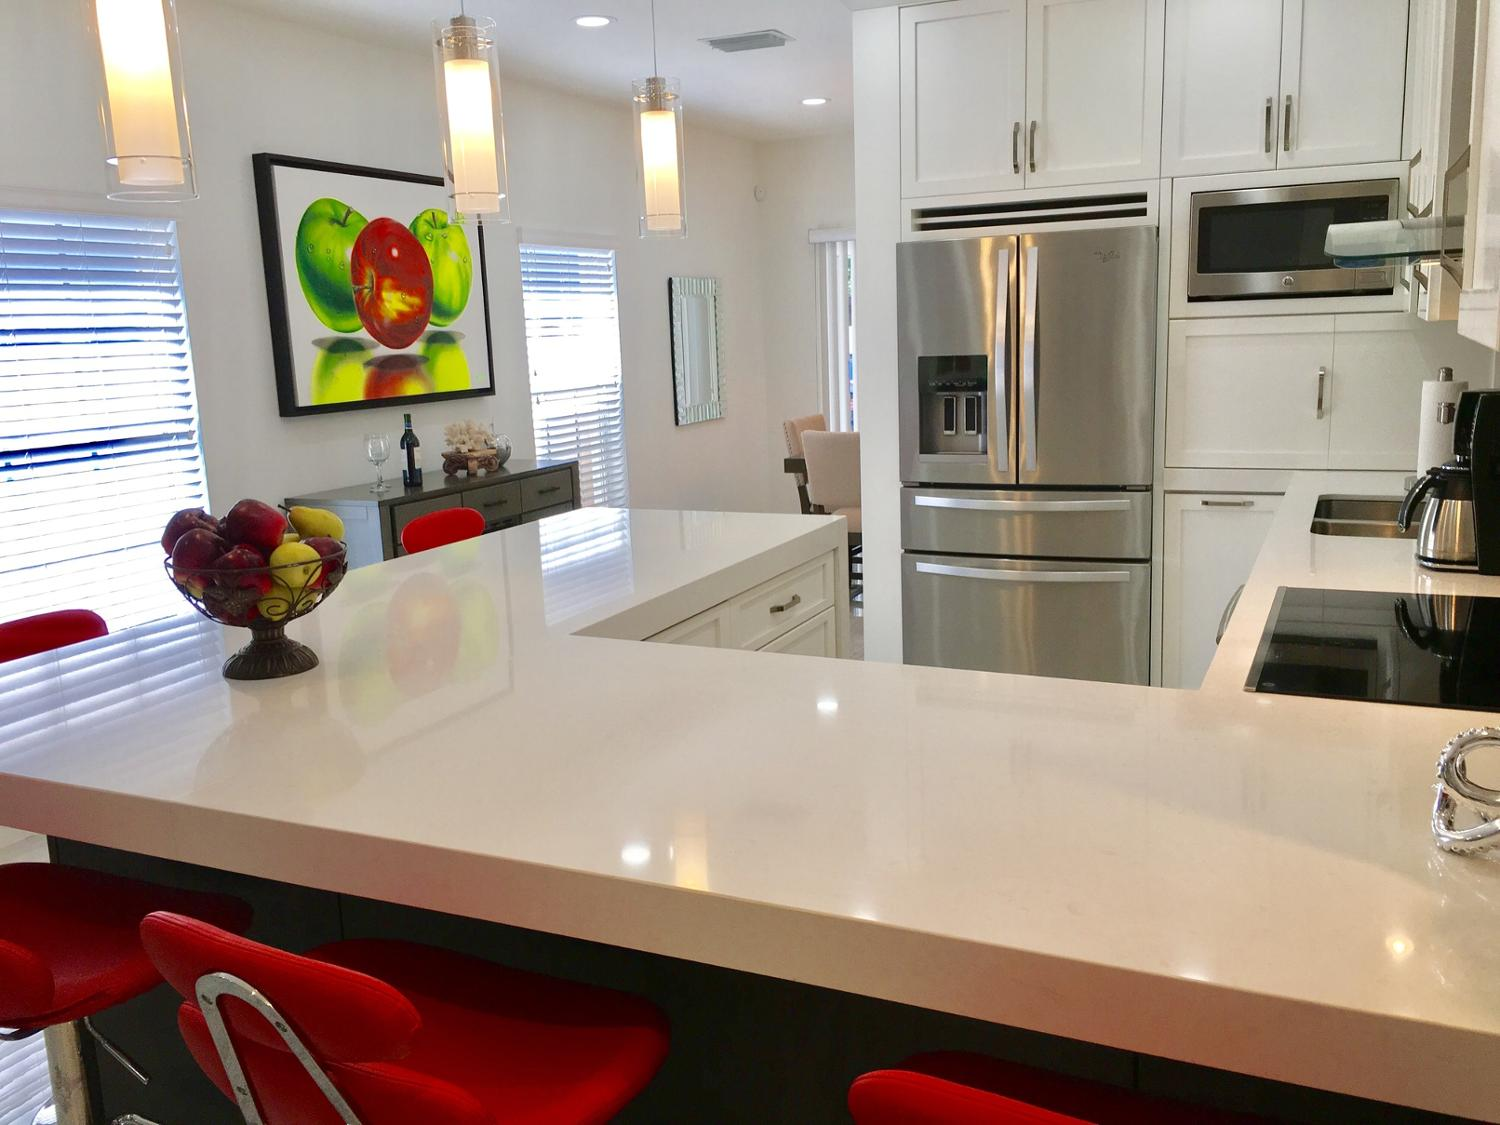 Vacation rental in Pompano Beach Florida